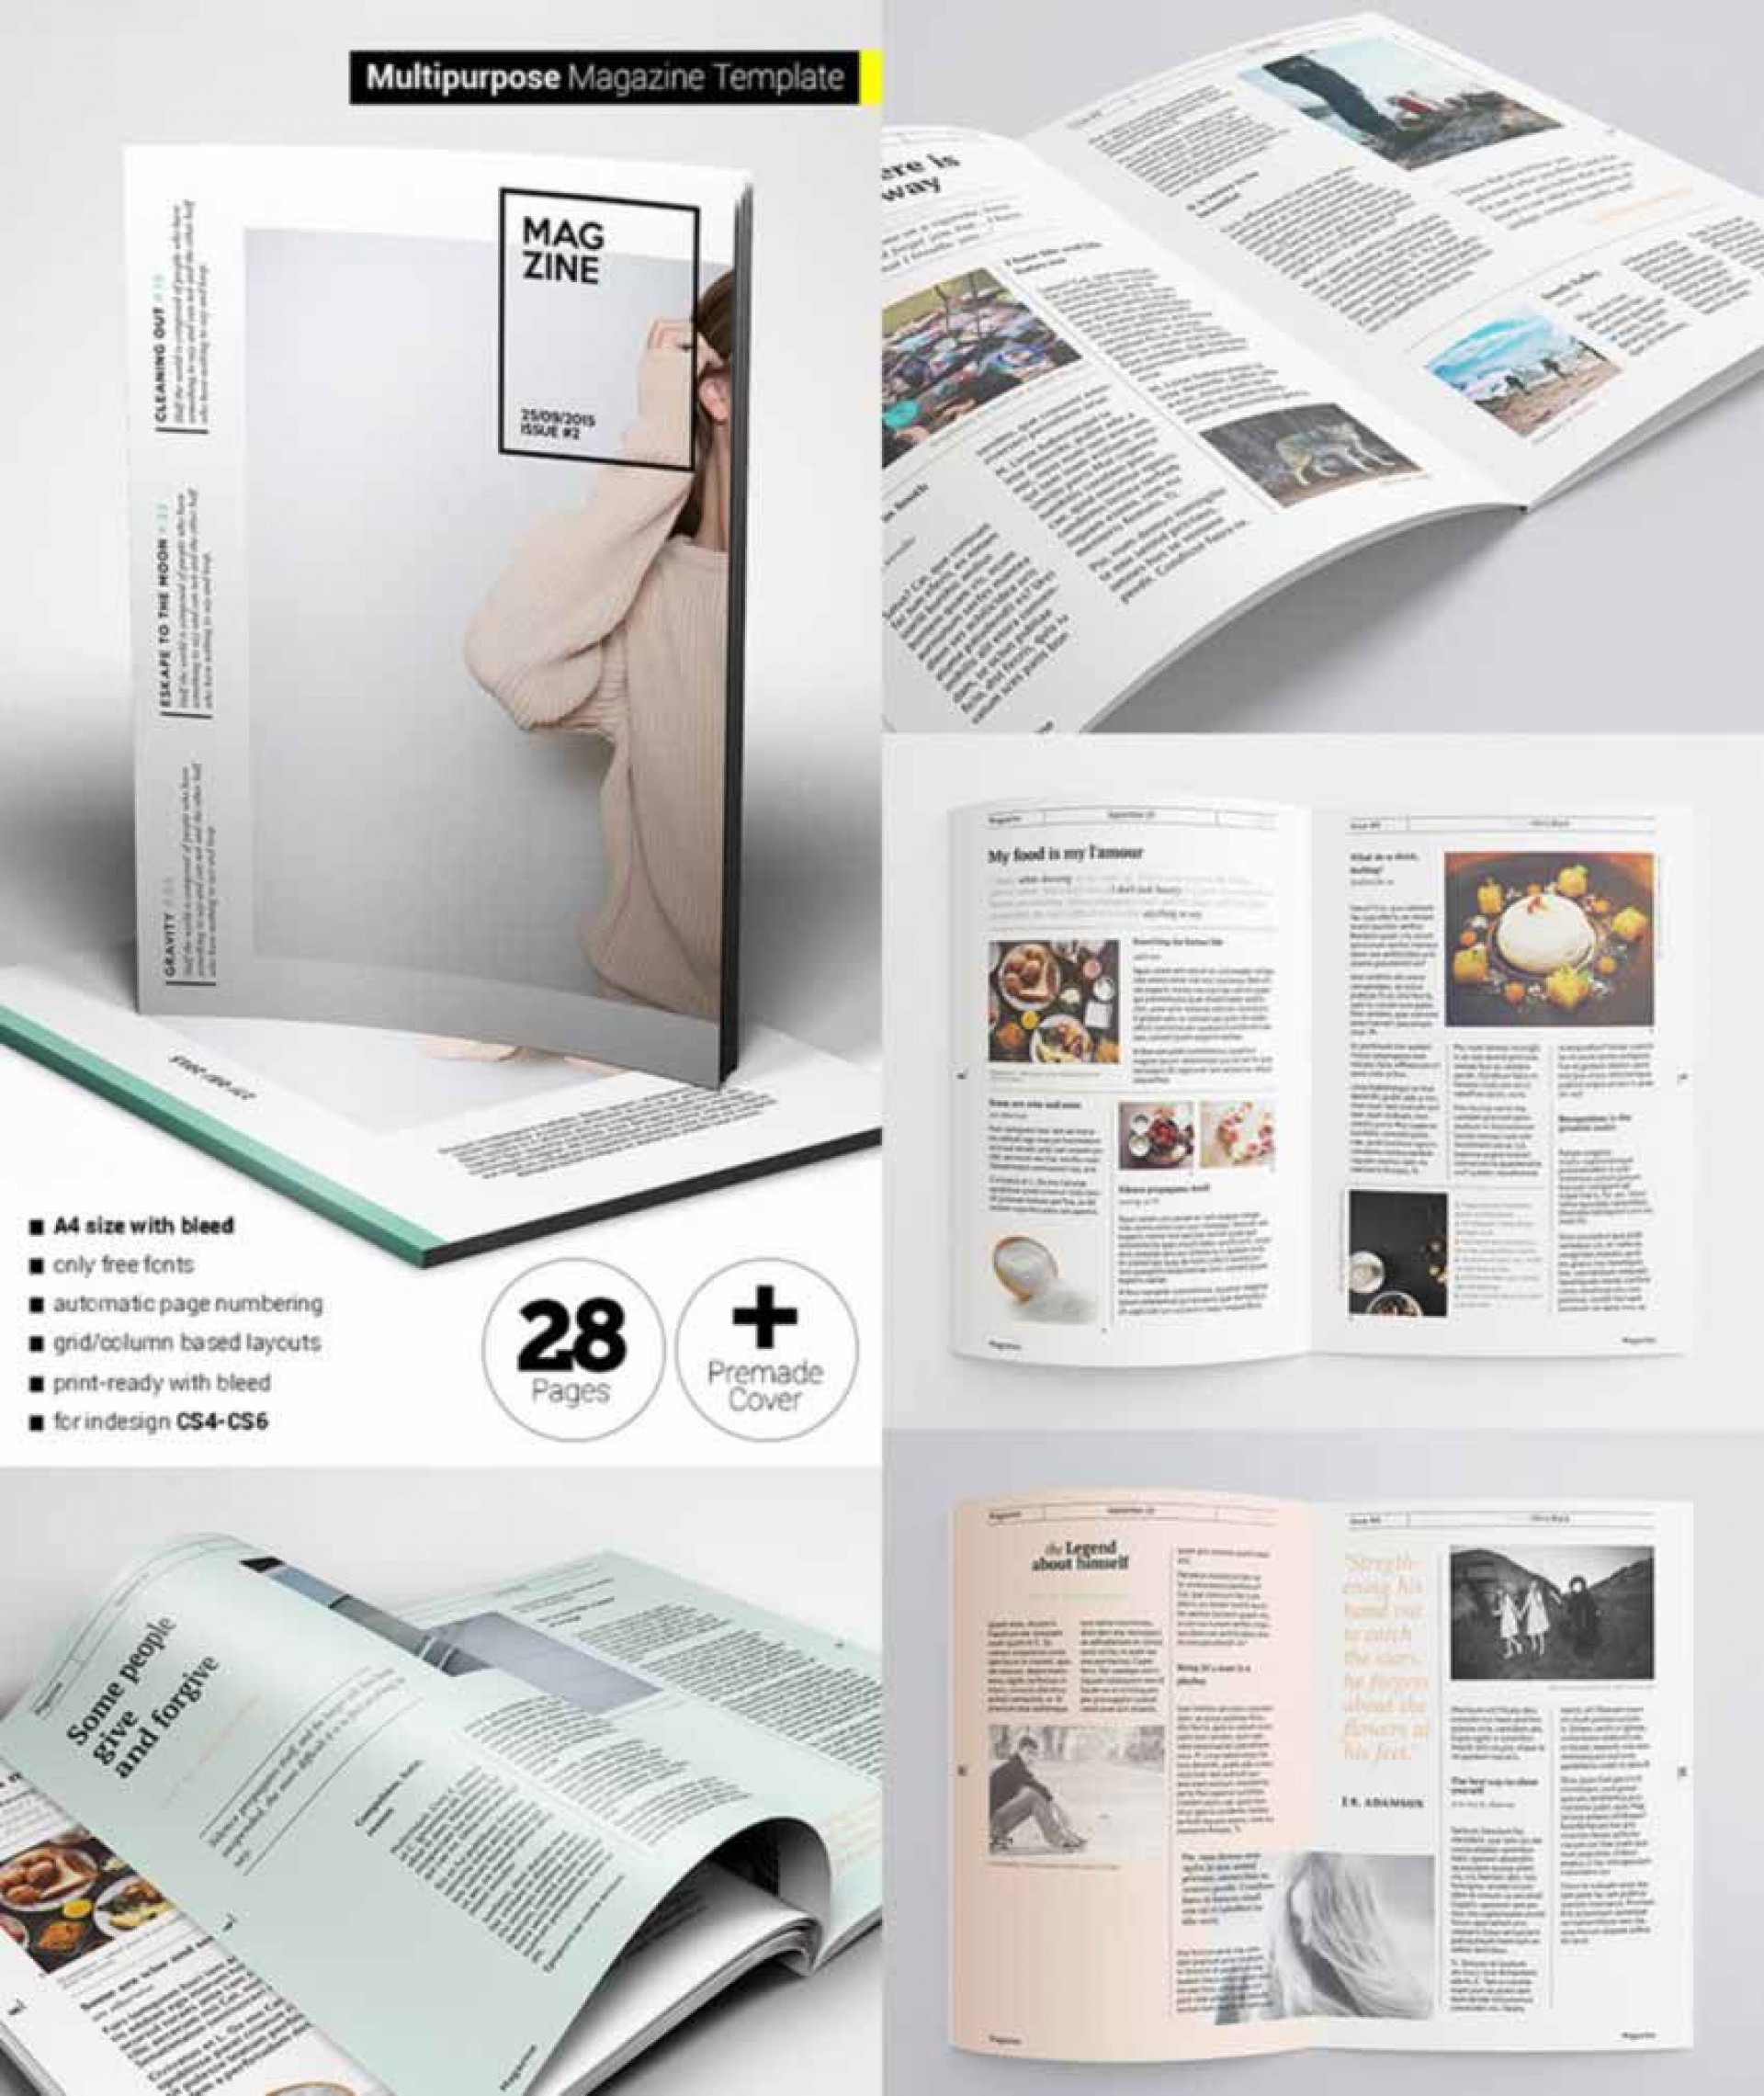 008 Imposing Free Magazine Article Layout Template For Word Idea 1920